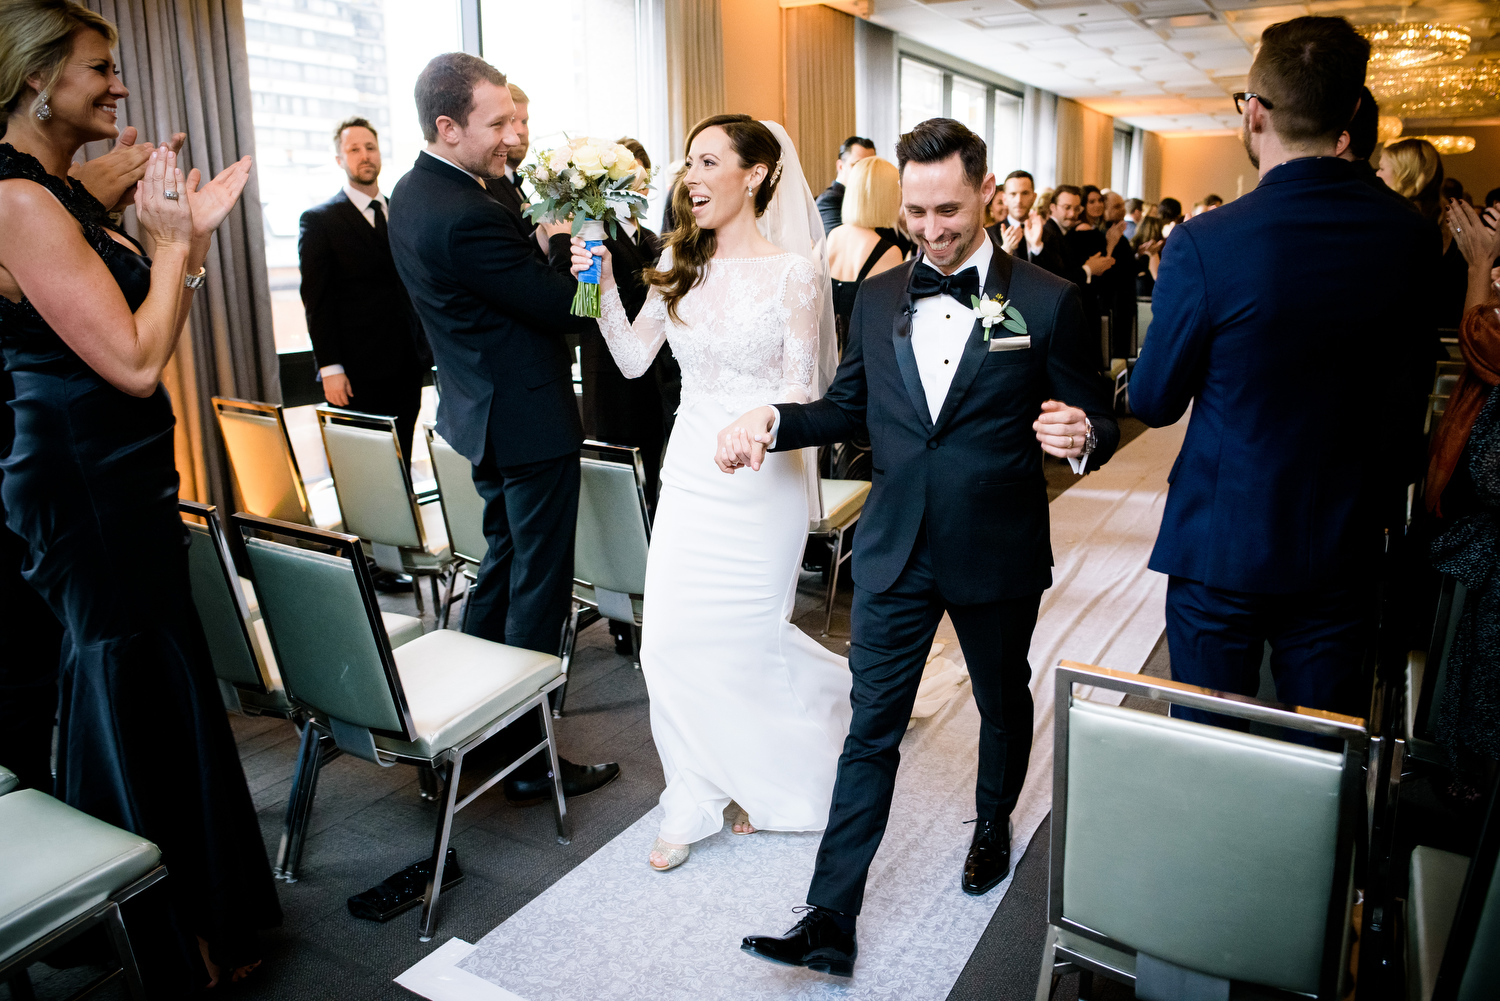 Bride and groom walk down the aisle after getting married at the Thompson Chicago.